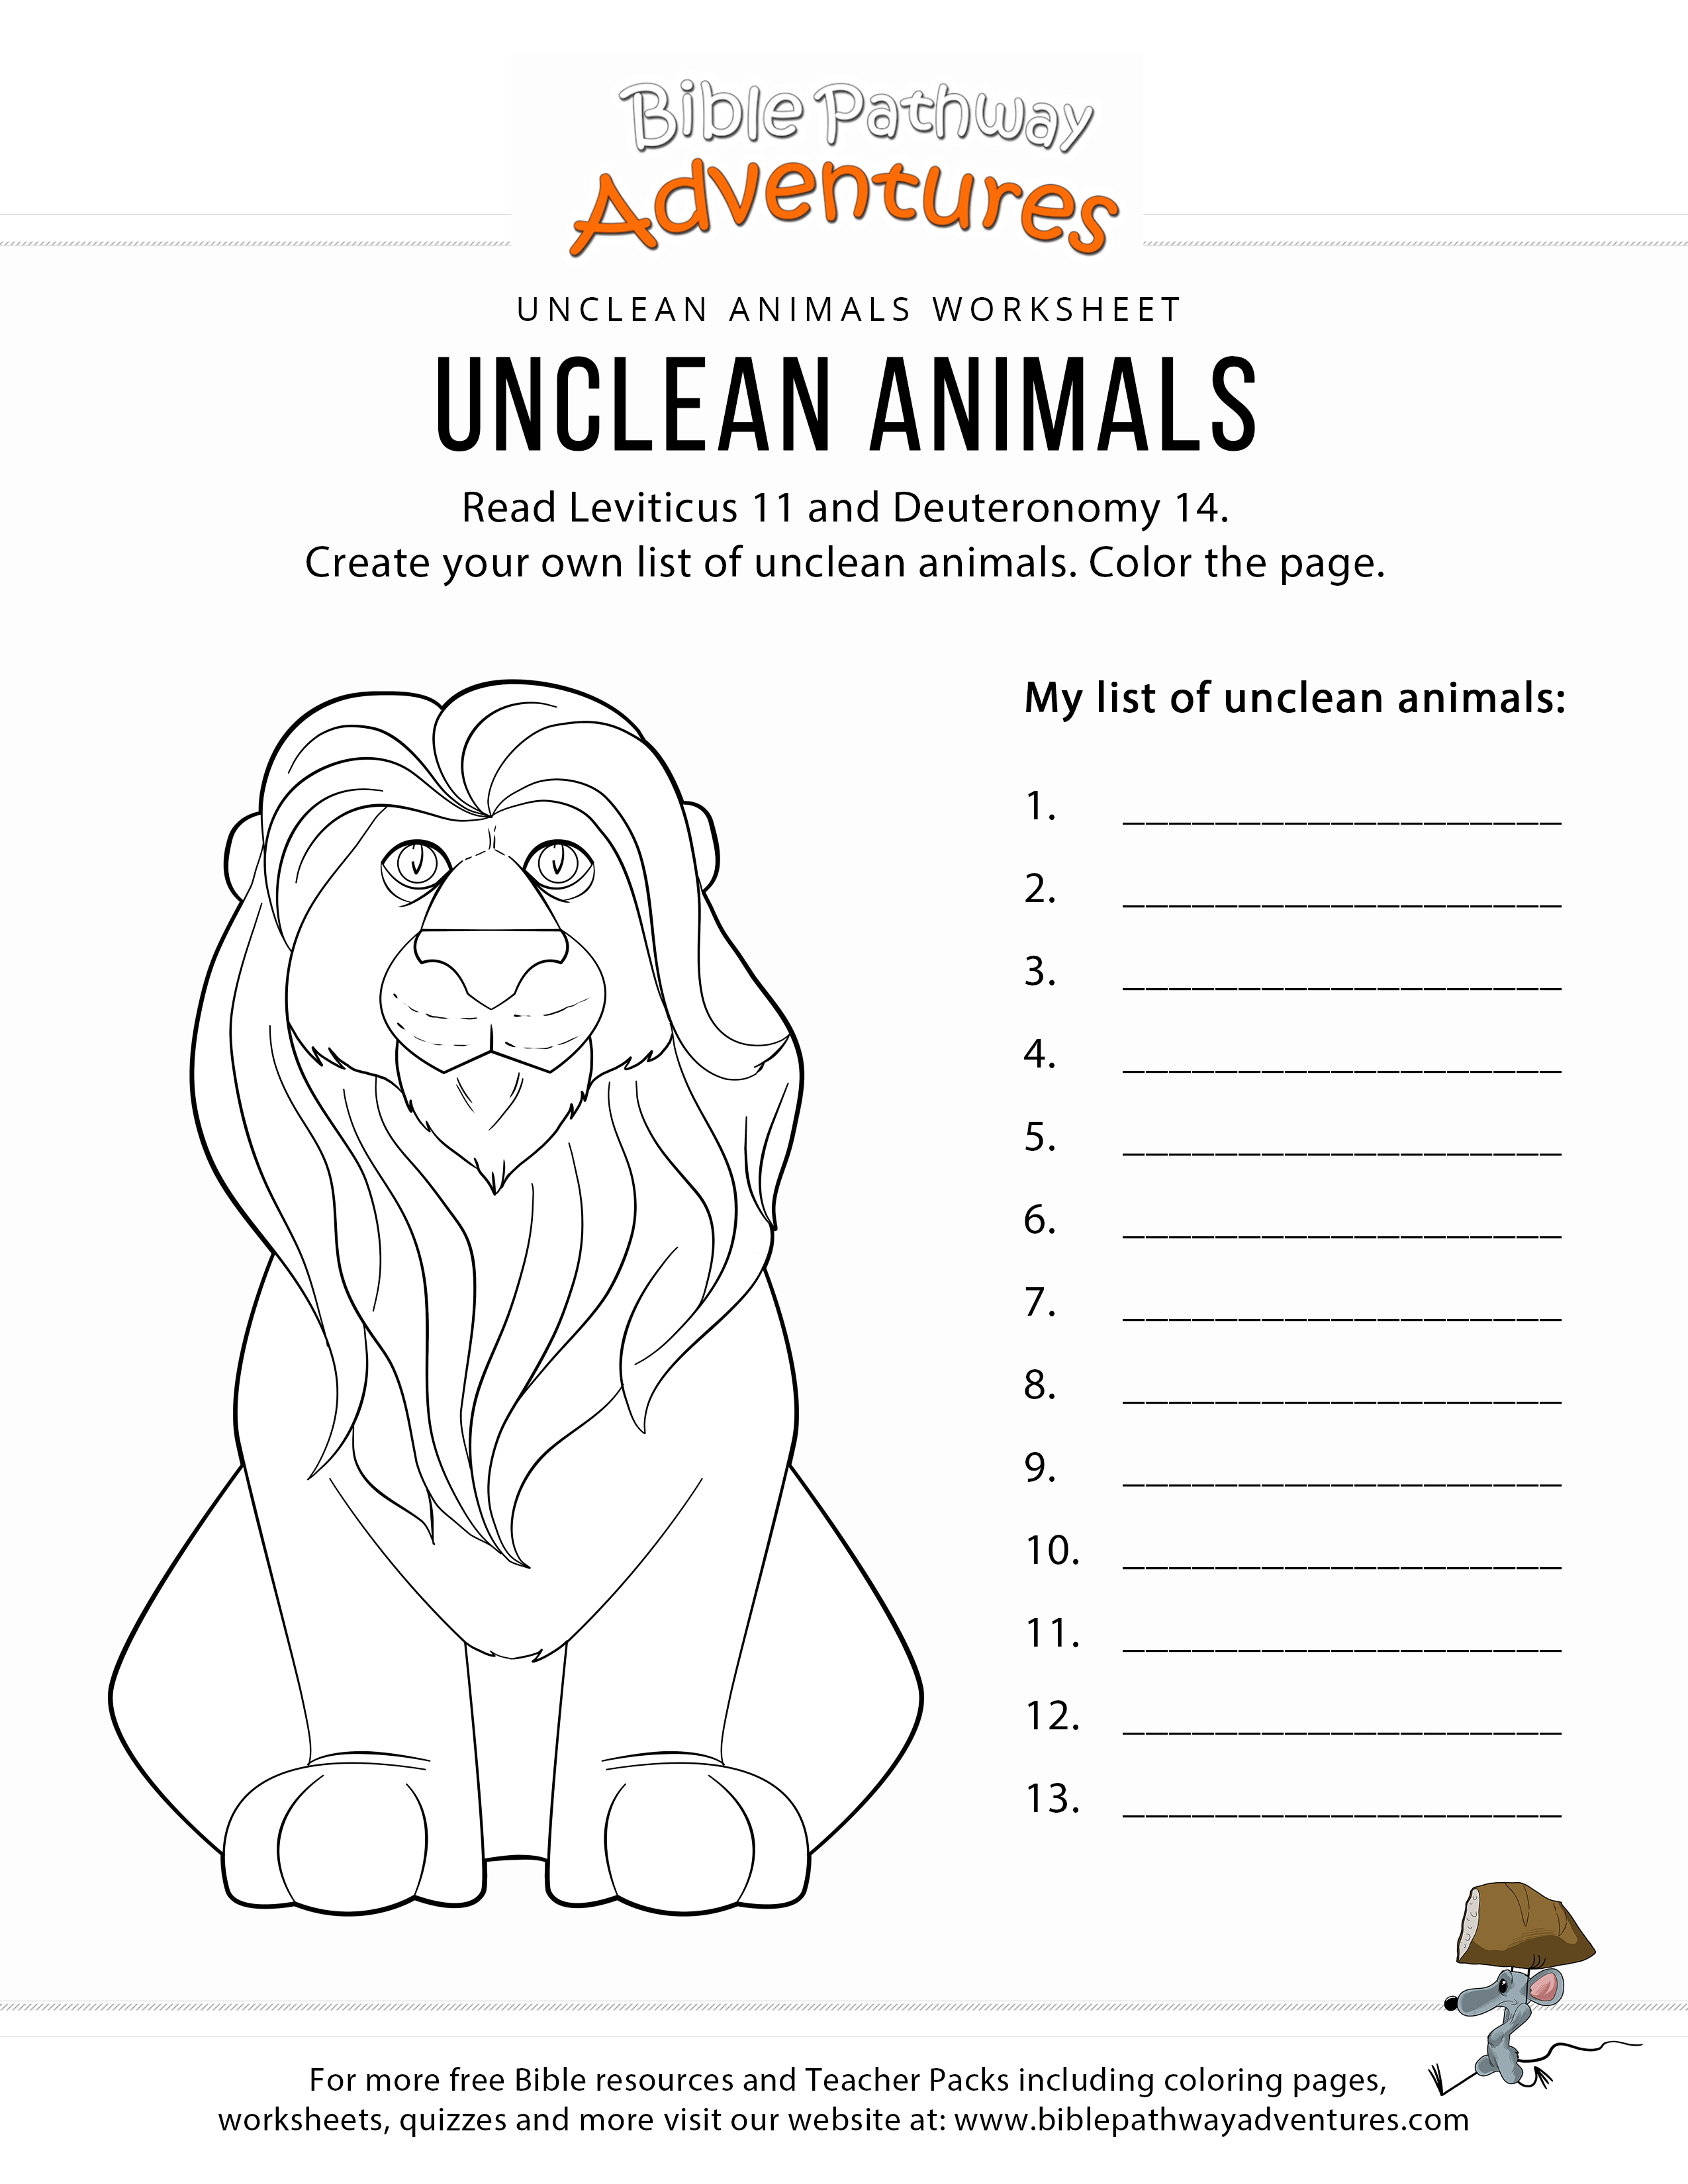 Unclean Animals Worksheet Amp Coloring Page Bible Pathway Adventures